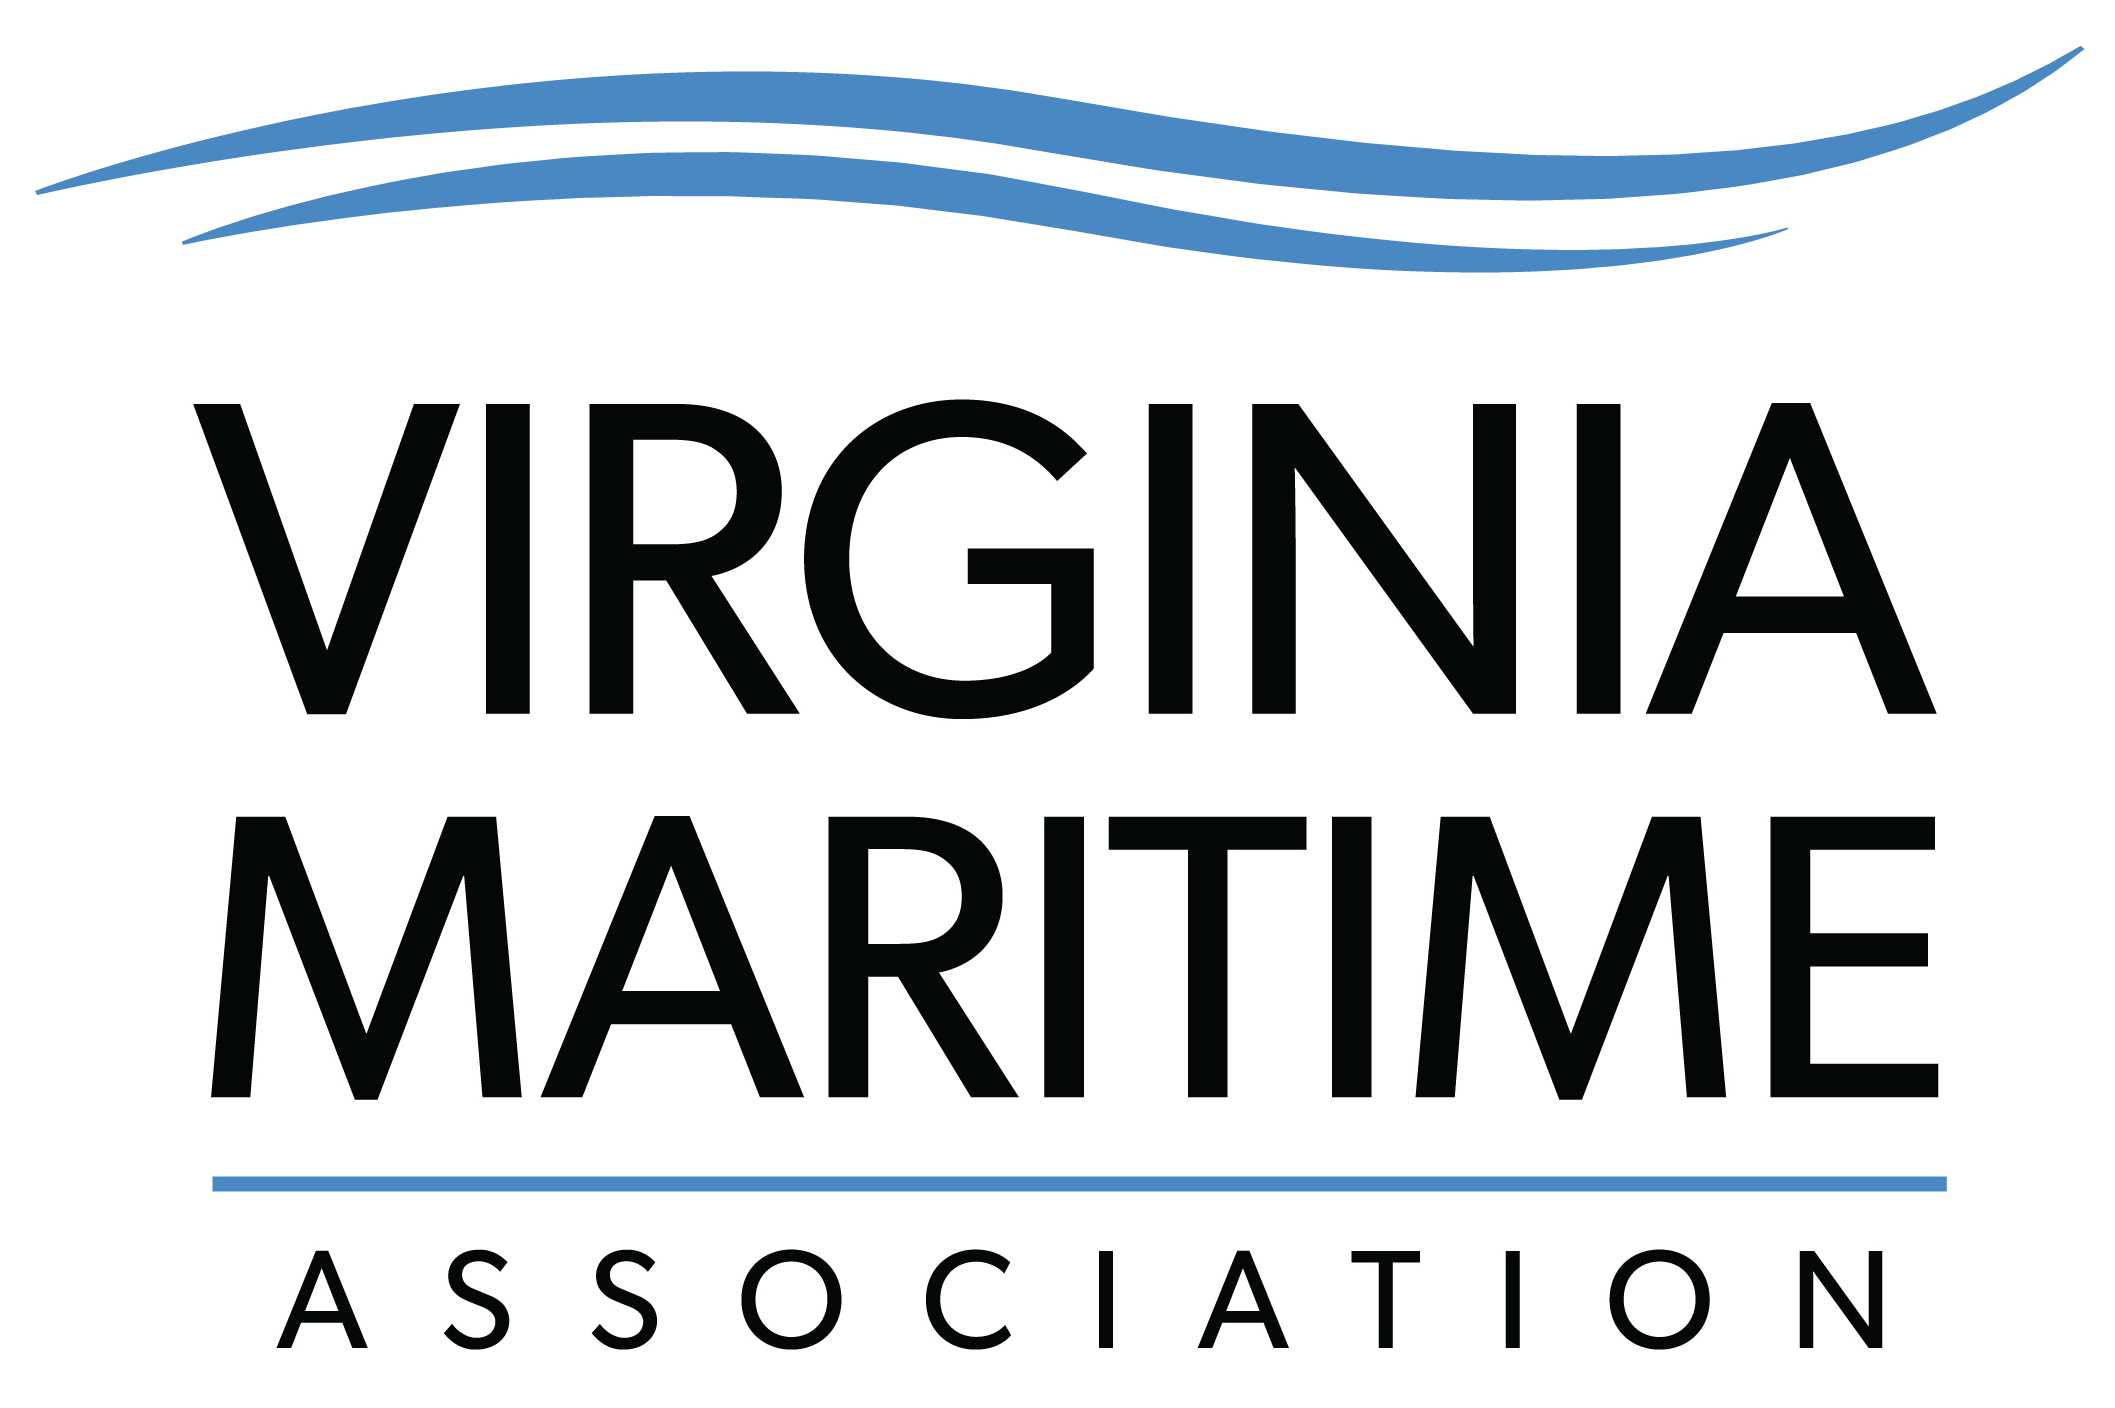 Virginia Maritime Association Stacked Logo